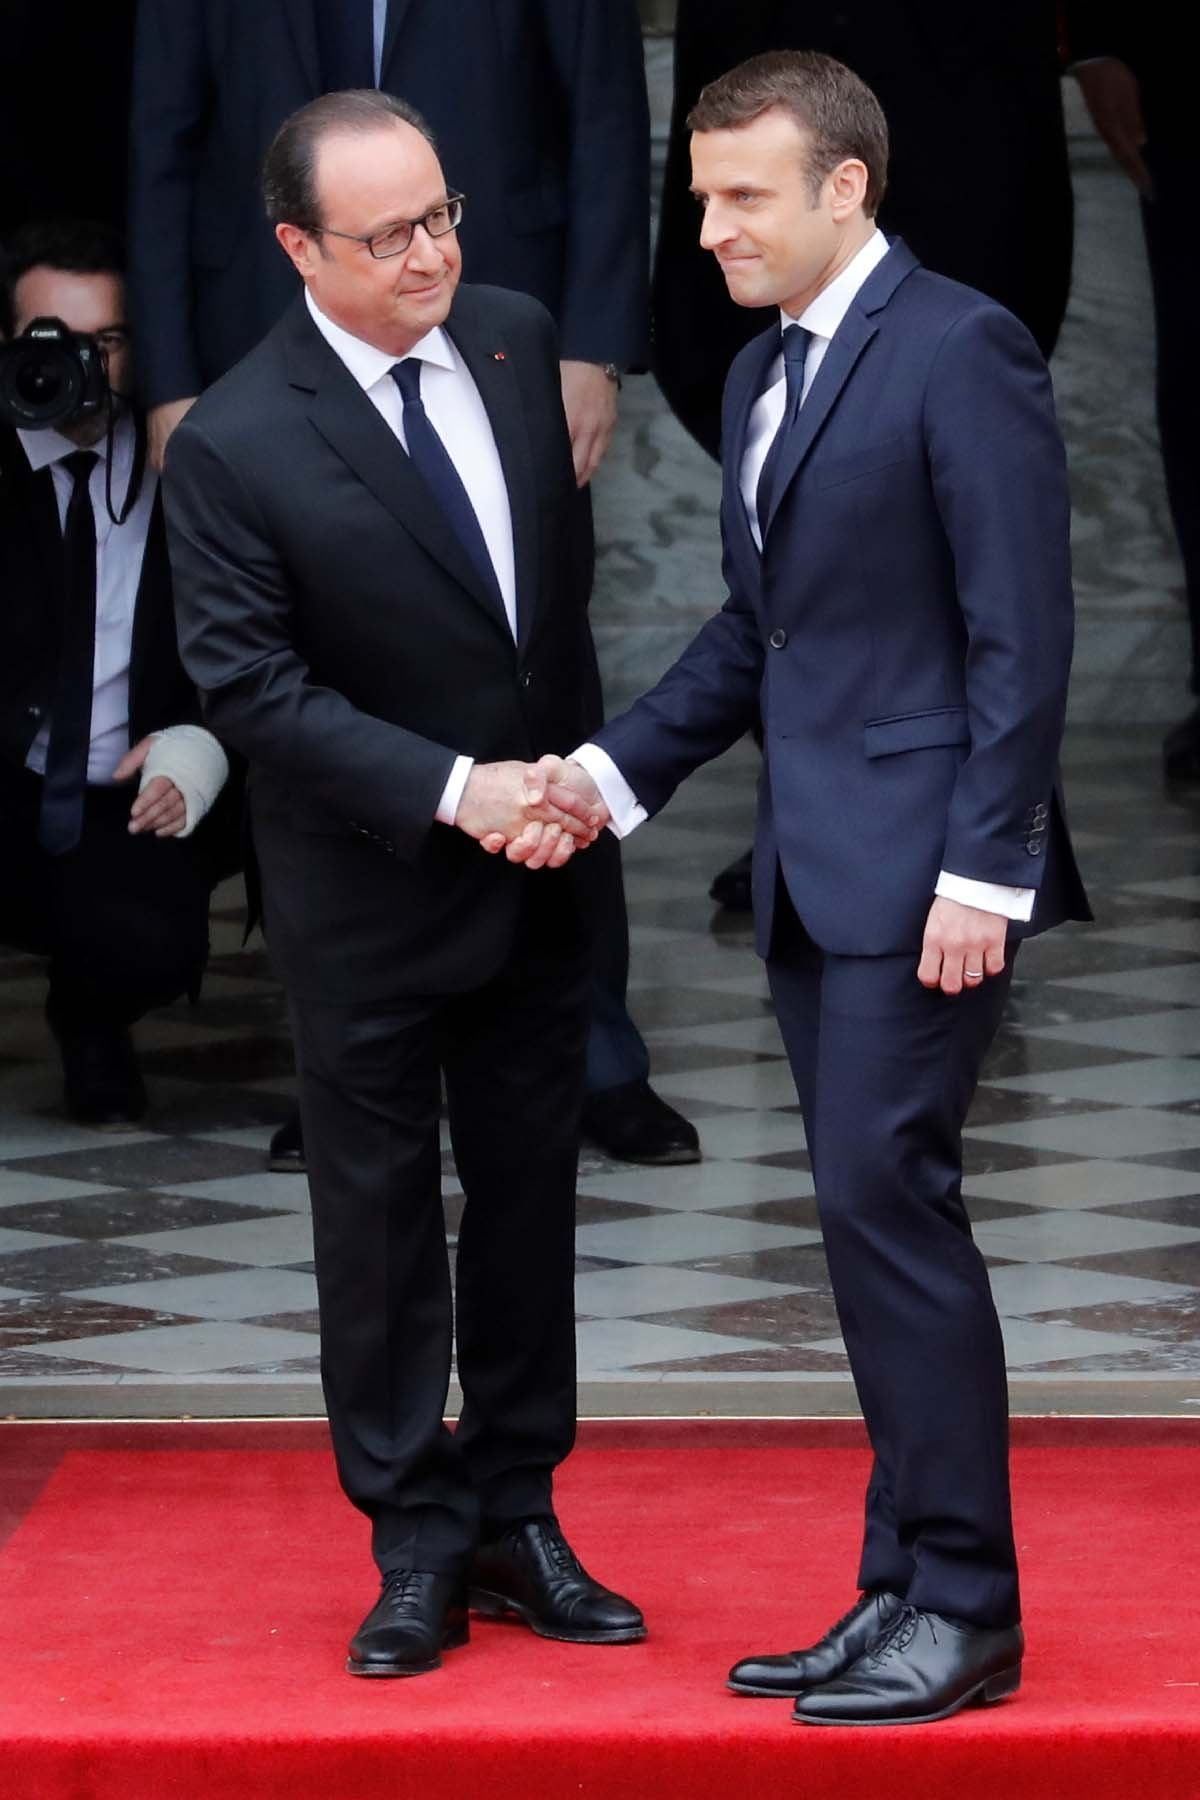 French newly elected President Emmanuel Macron (R) is welcomed by his predecessor Francois Hollande as he arrives at the Elysee presidential Palace for the handover and inauguration ceremonies on May 14, 2017 in Paris.